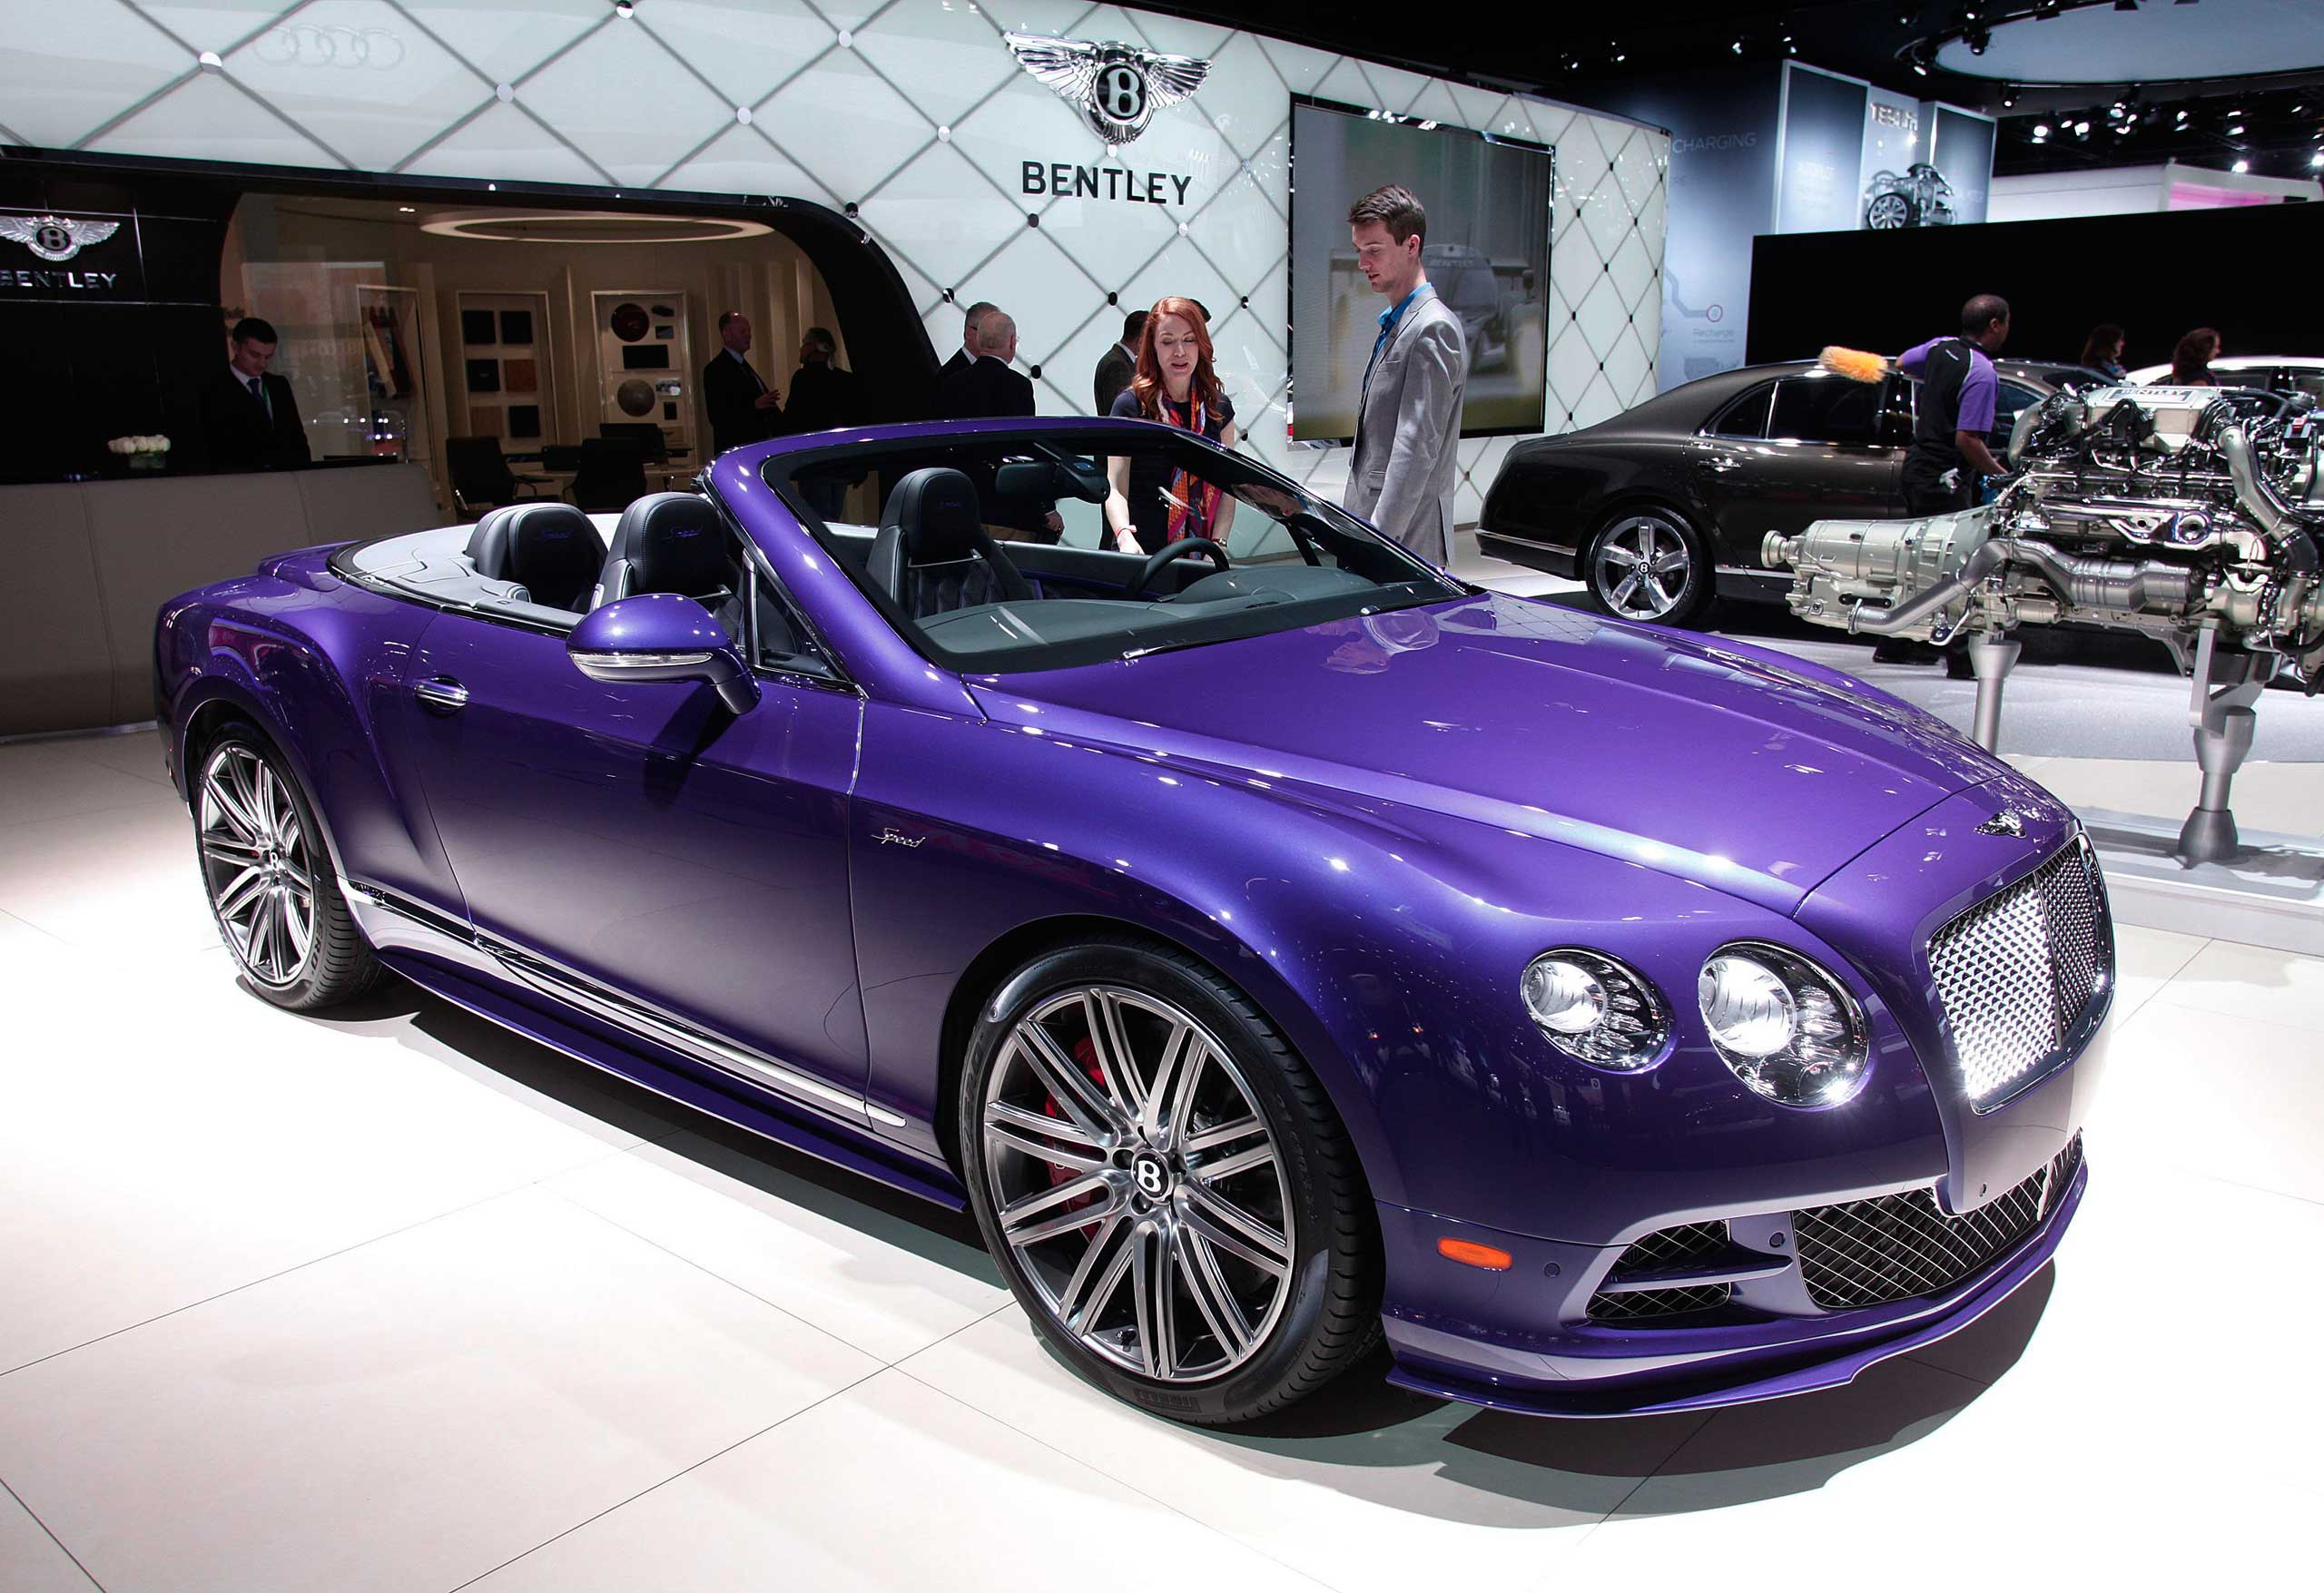 The Bentley GT Speed Convertible is displayed at the Mercedes exhibit on Jan. 13, 2015 in Detroit.